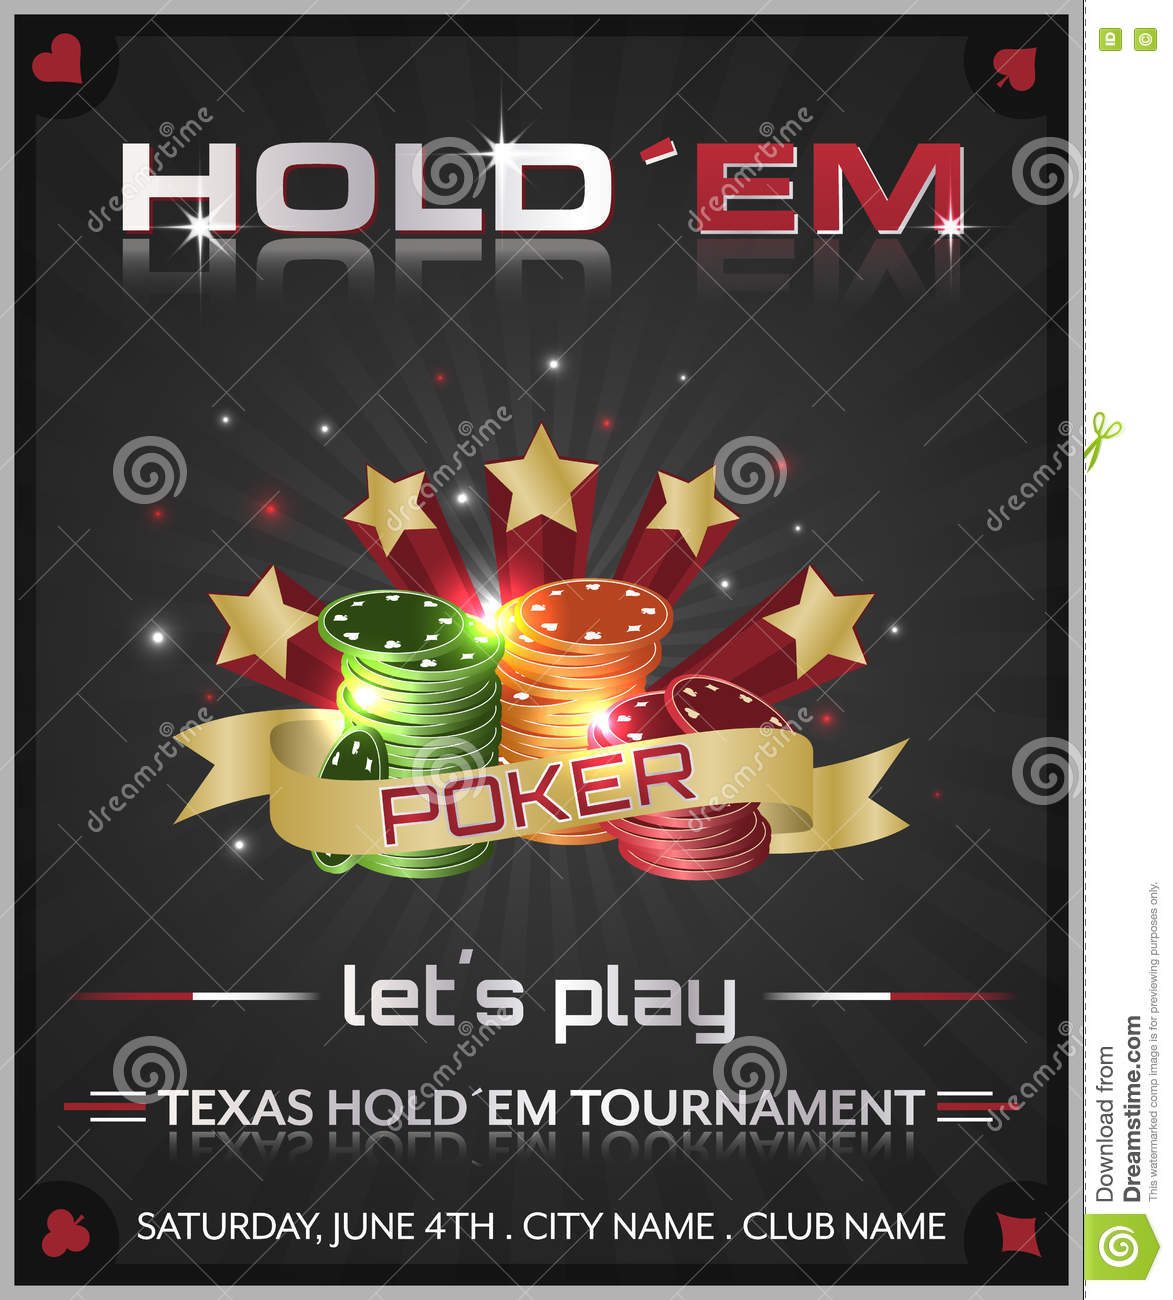 Holdem pants